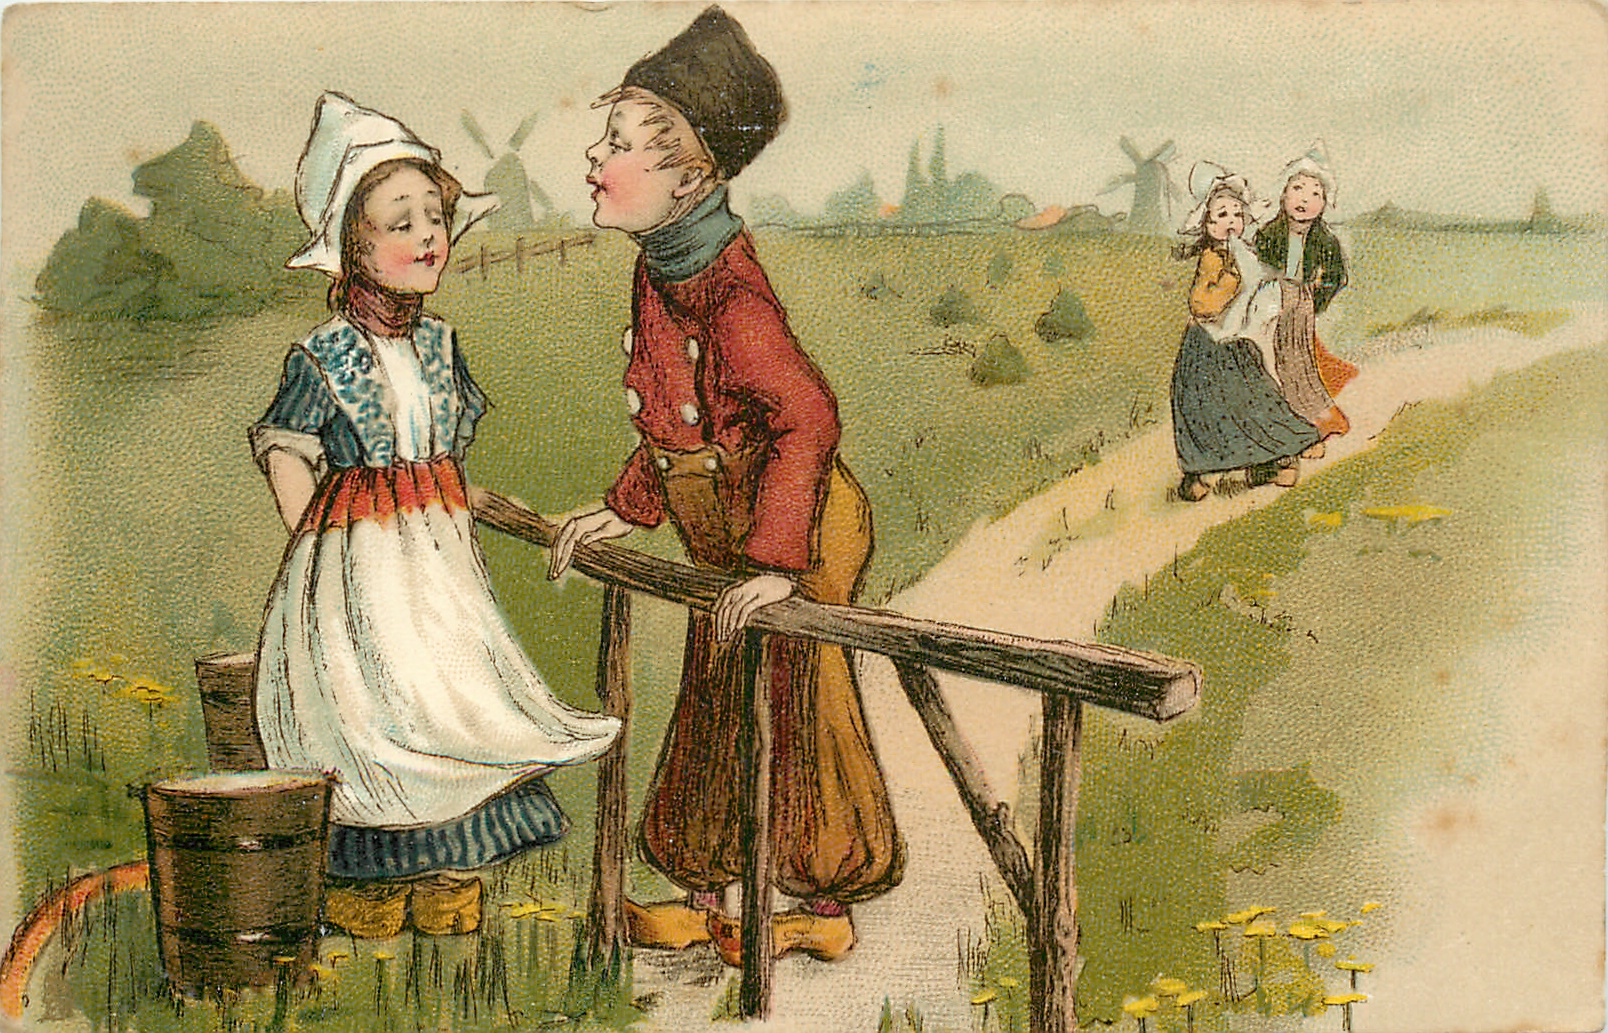 Dutch boy leans on fence, towards girl with two pails, two girls on path